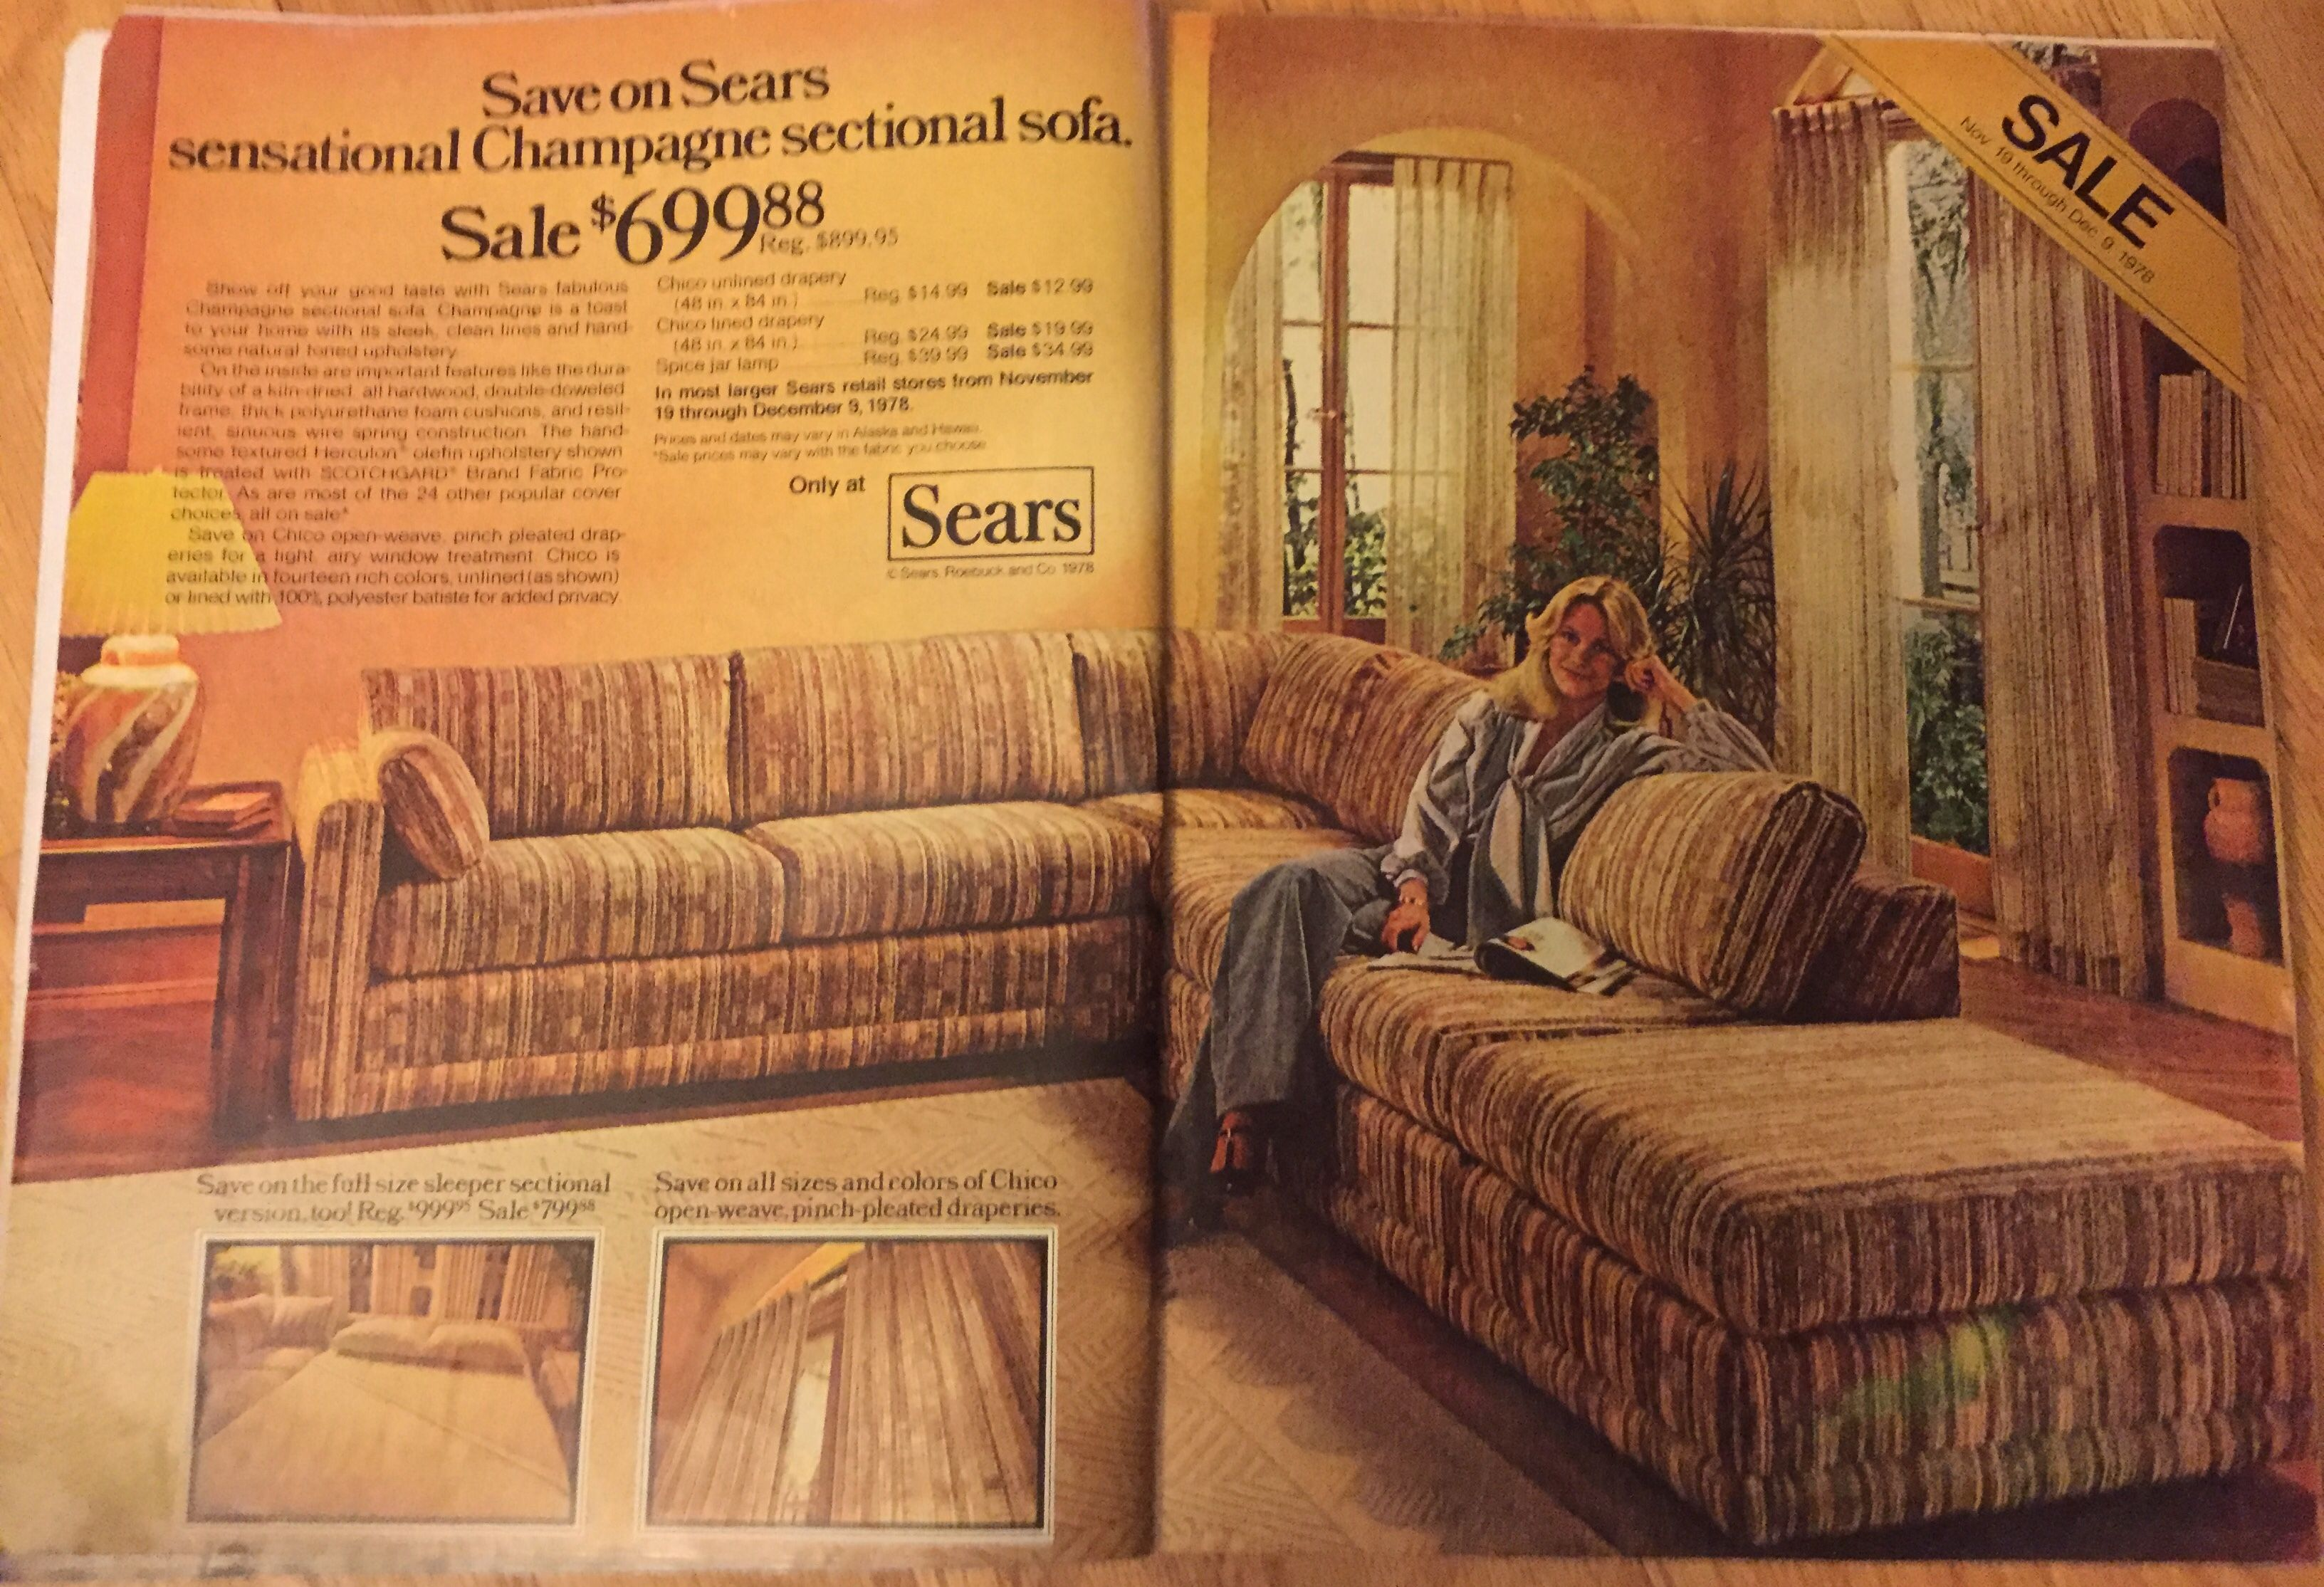 Champagne Sectional Sofa At Sears Ad From 1978 Good Housekeeping